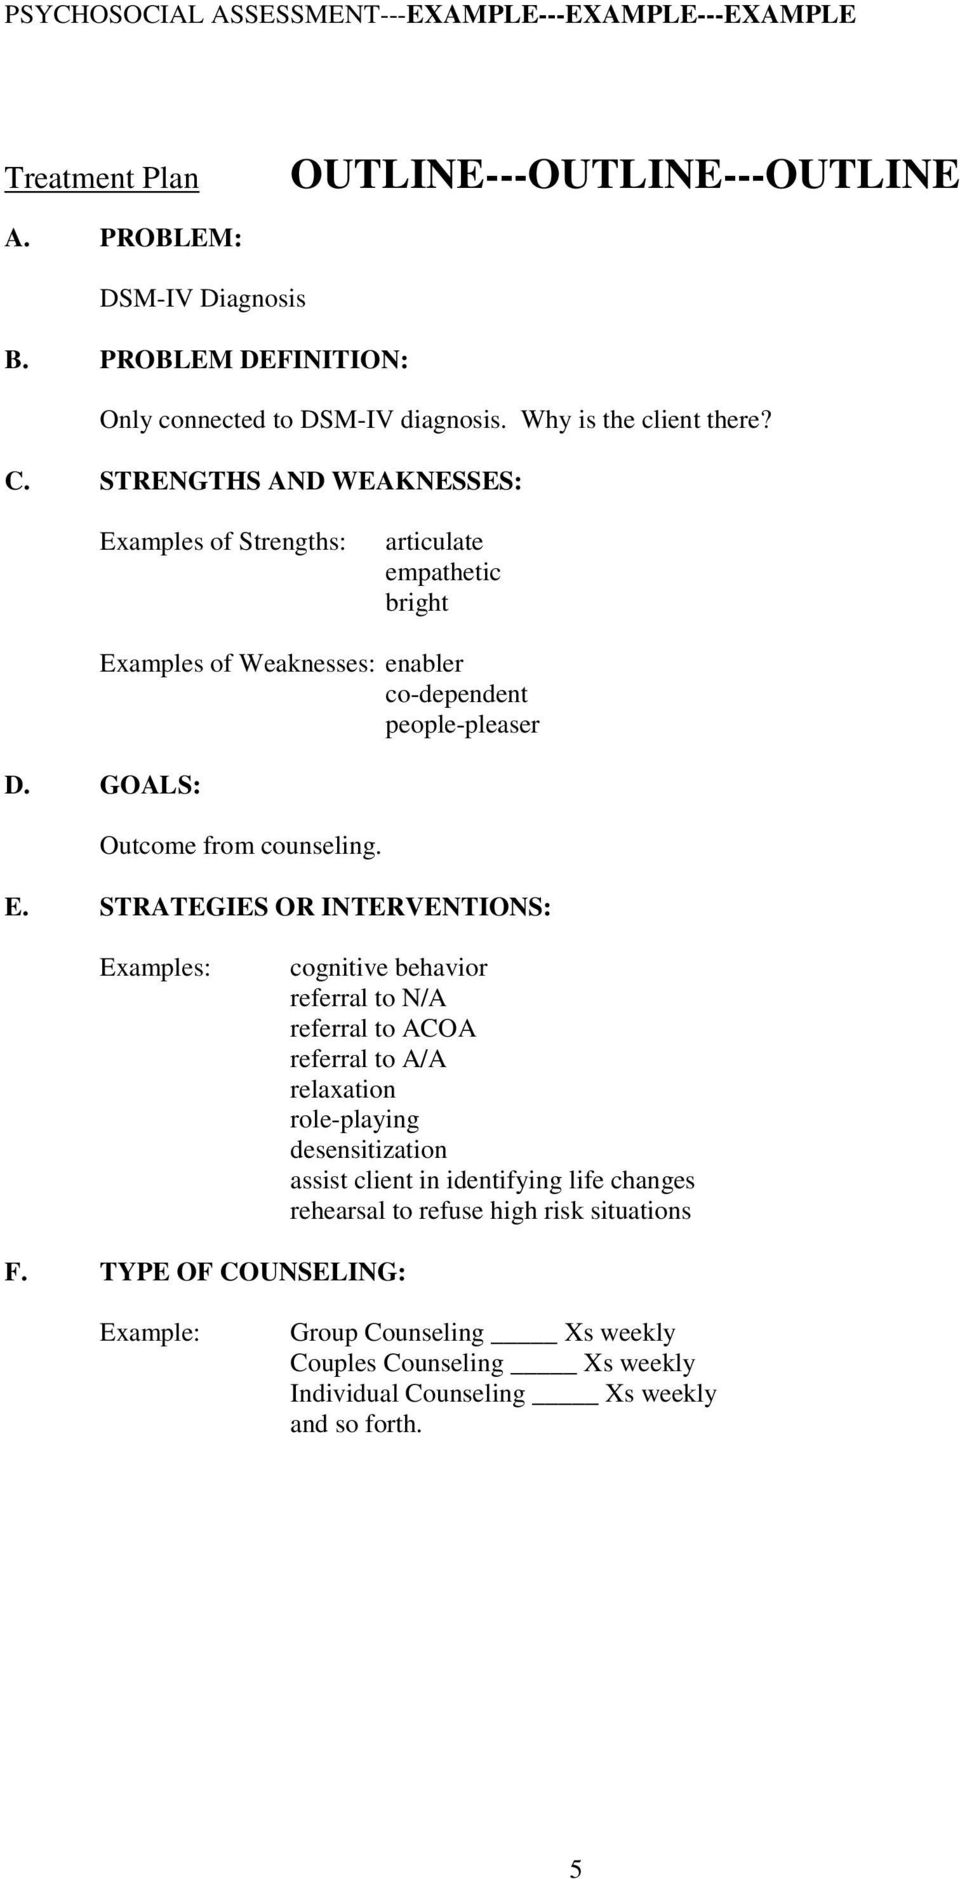 admission essay strengths and weaknesses